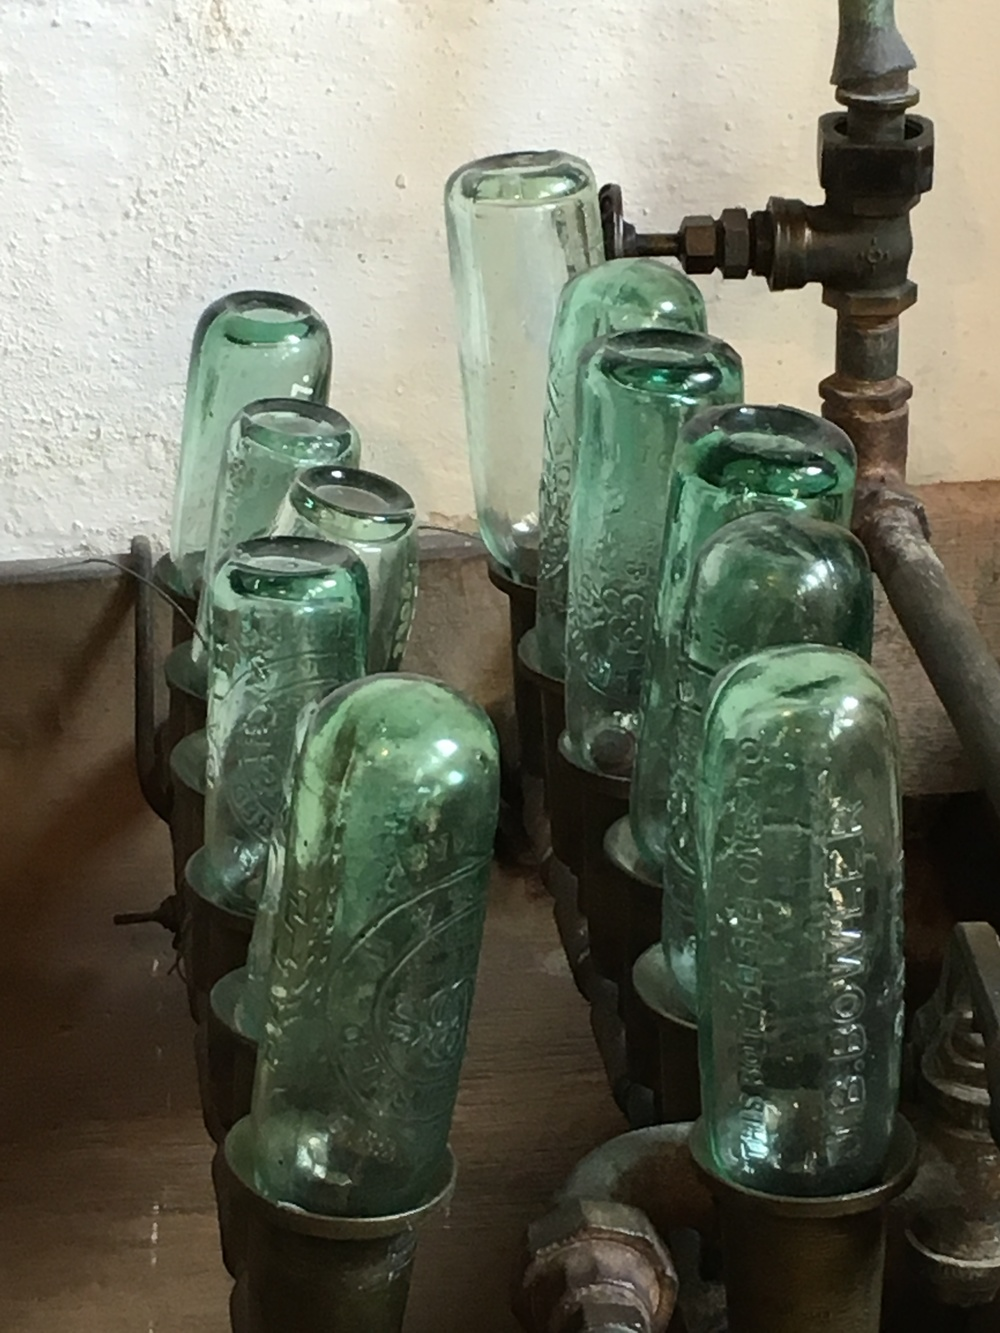 A line-up of bottles from the same soda factory.